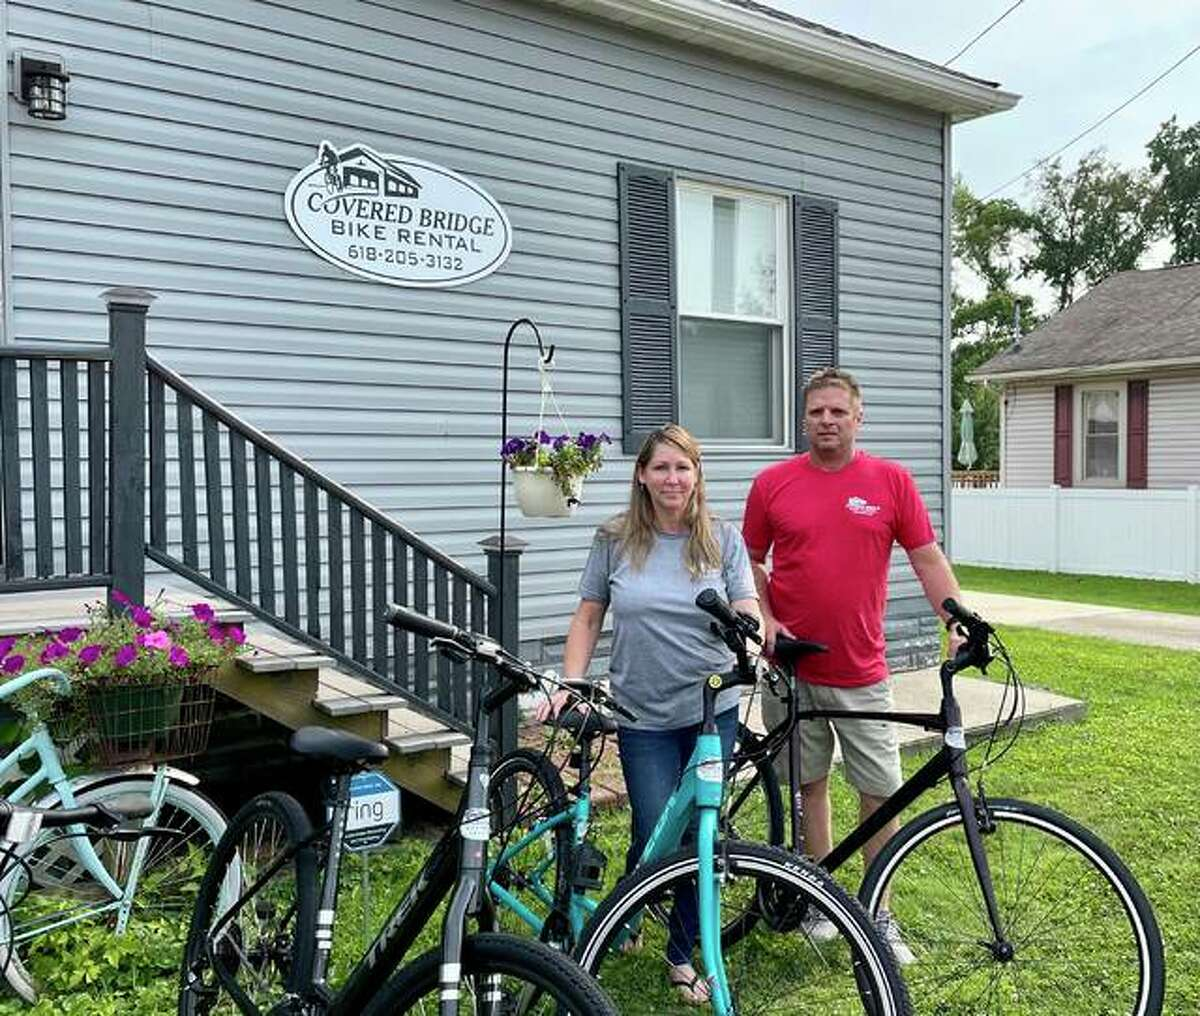 Owners of Covered Bridge Bike Rental Teri and Chris Moore stand in front of their new store front with a couple of their rental bikes. They have 4 Class 2 e-bikes for rent.